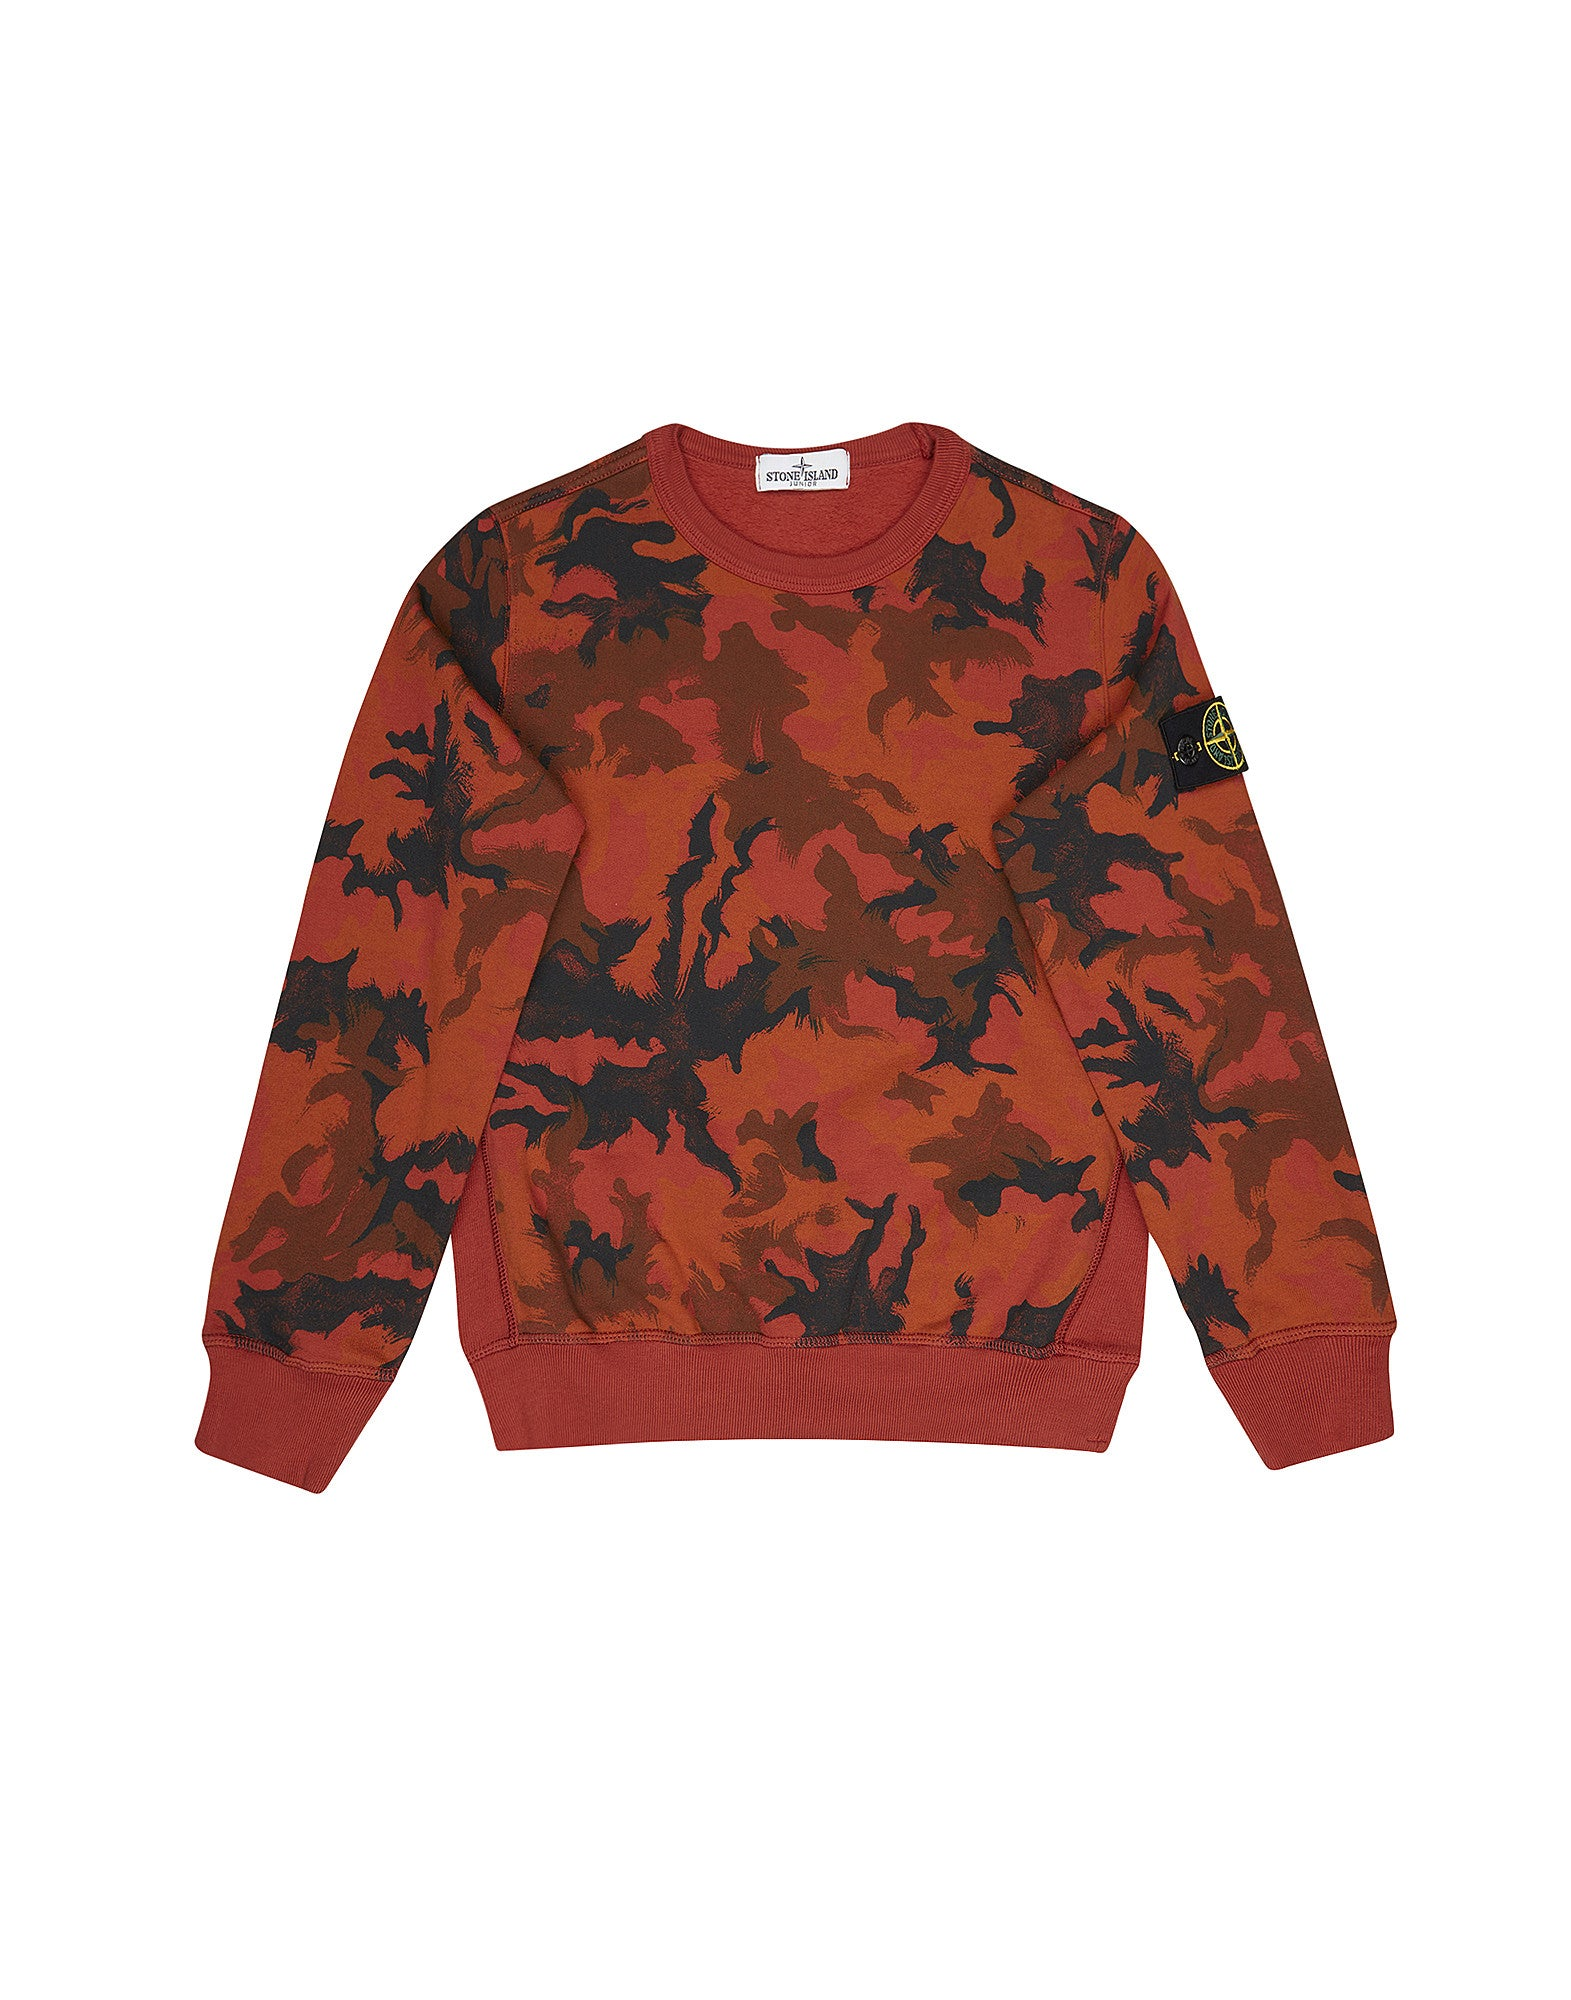 61560 Crew Neck Camo Sweatshirt in Red